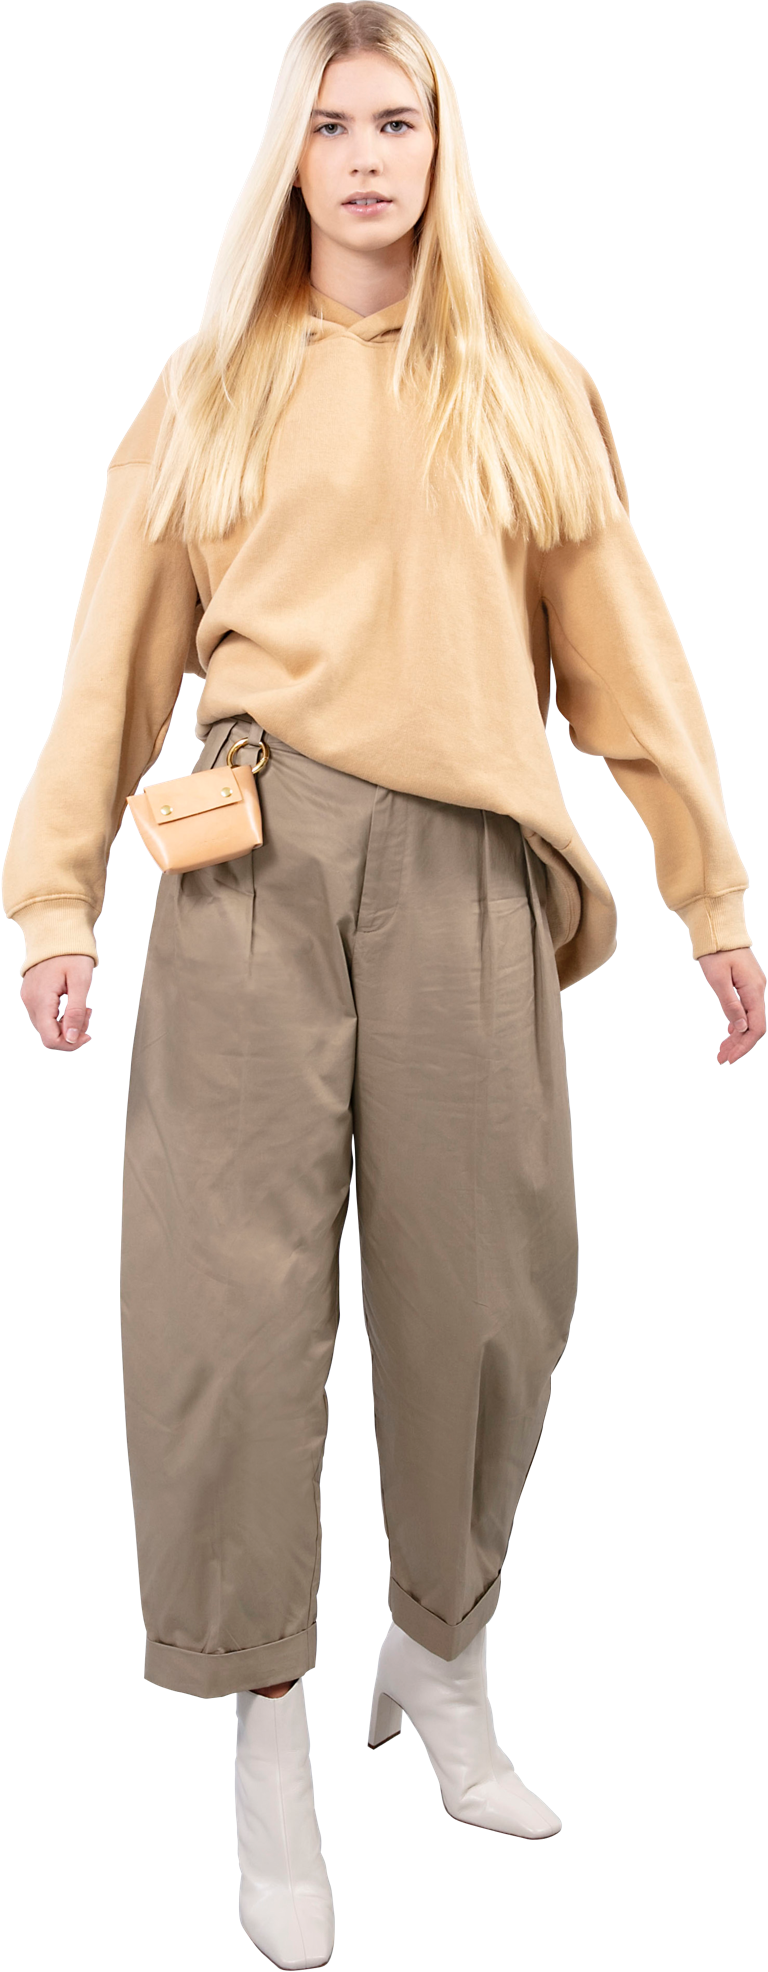 model-pouch2.png